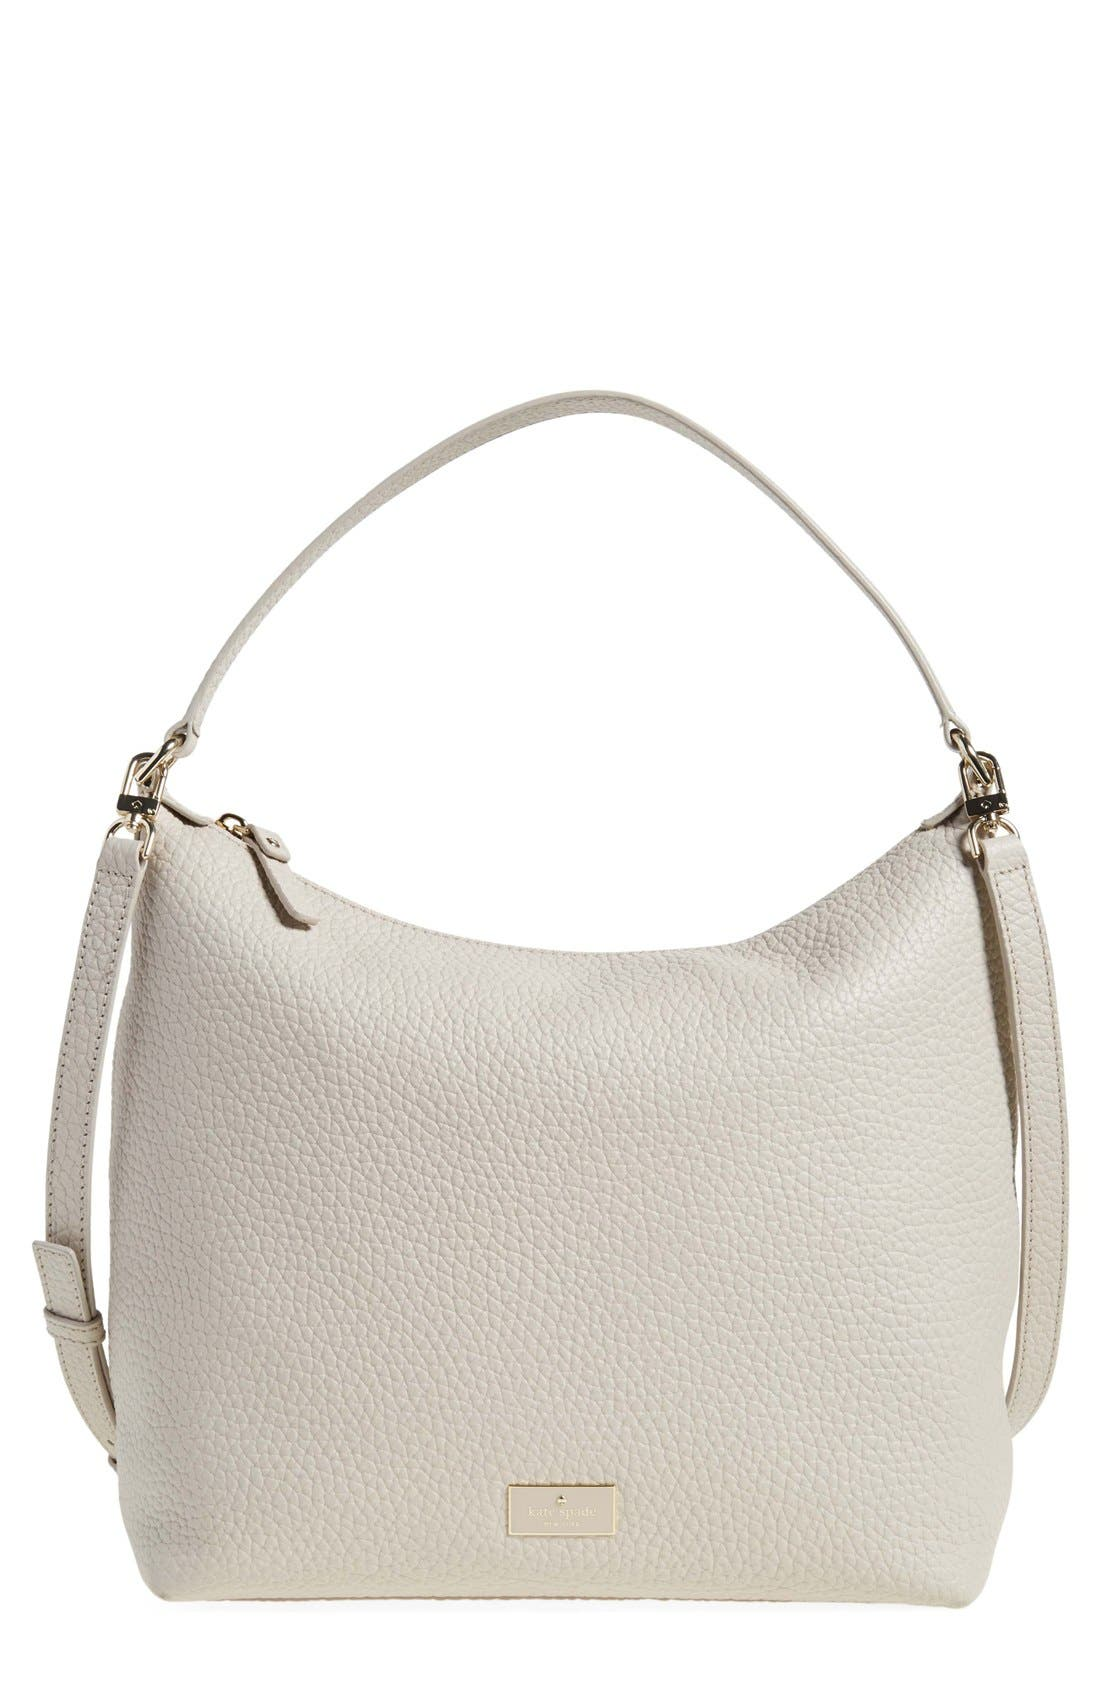 Alternate Image 1 Selected - kate spade new york 'prospect place - kaia' leather hobo